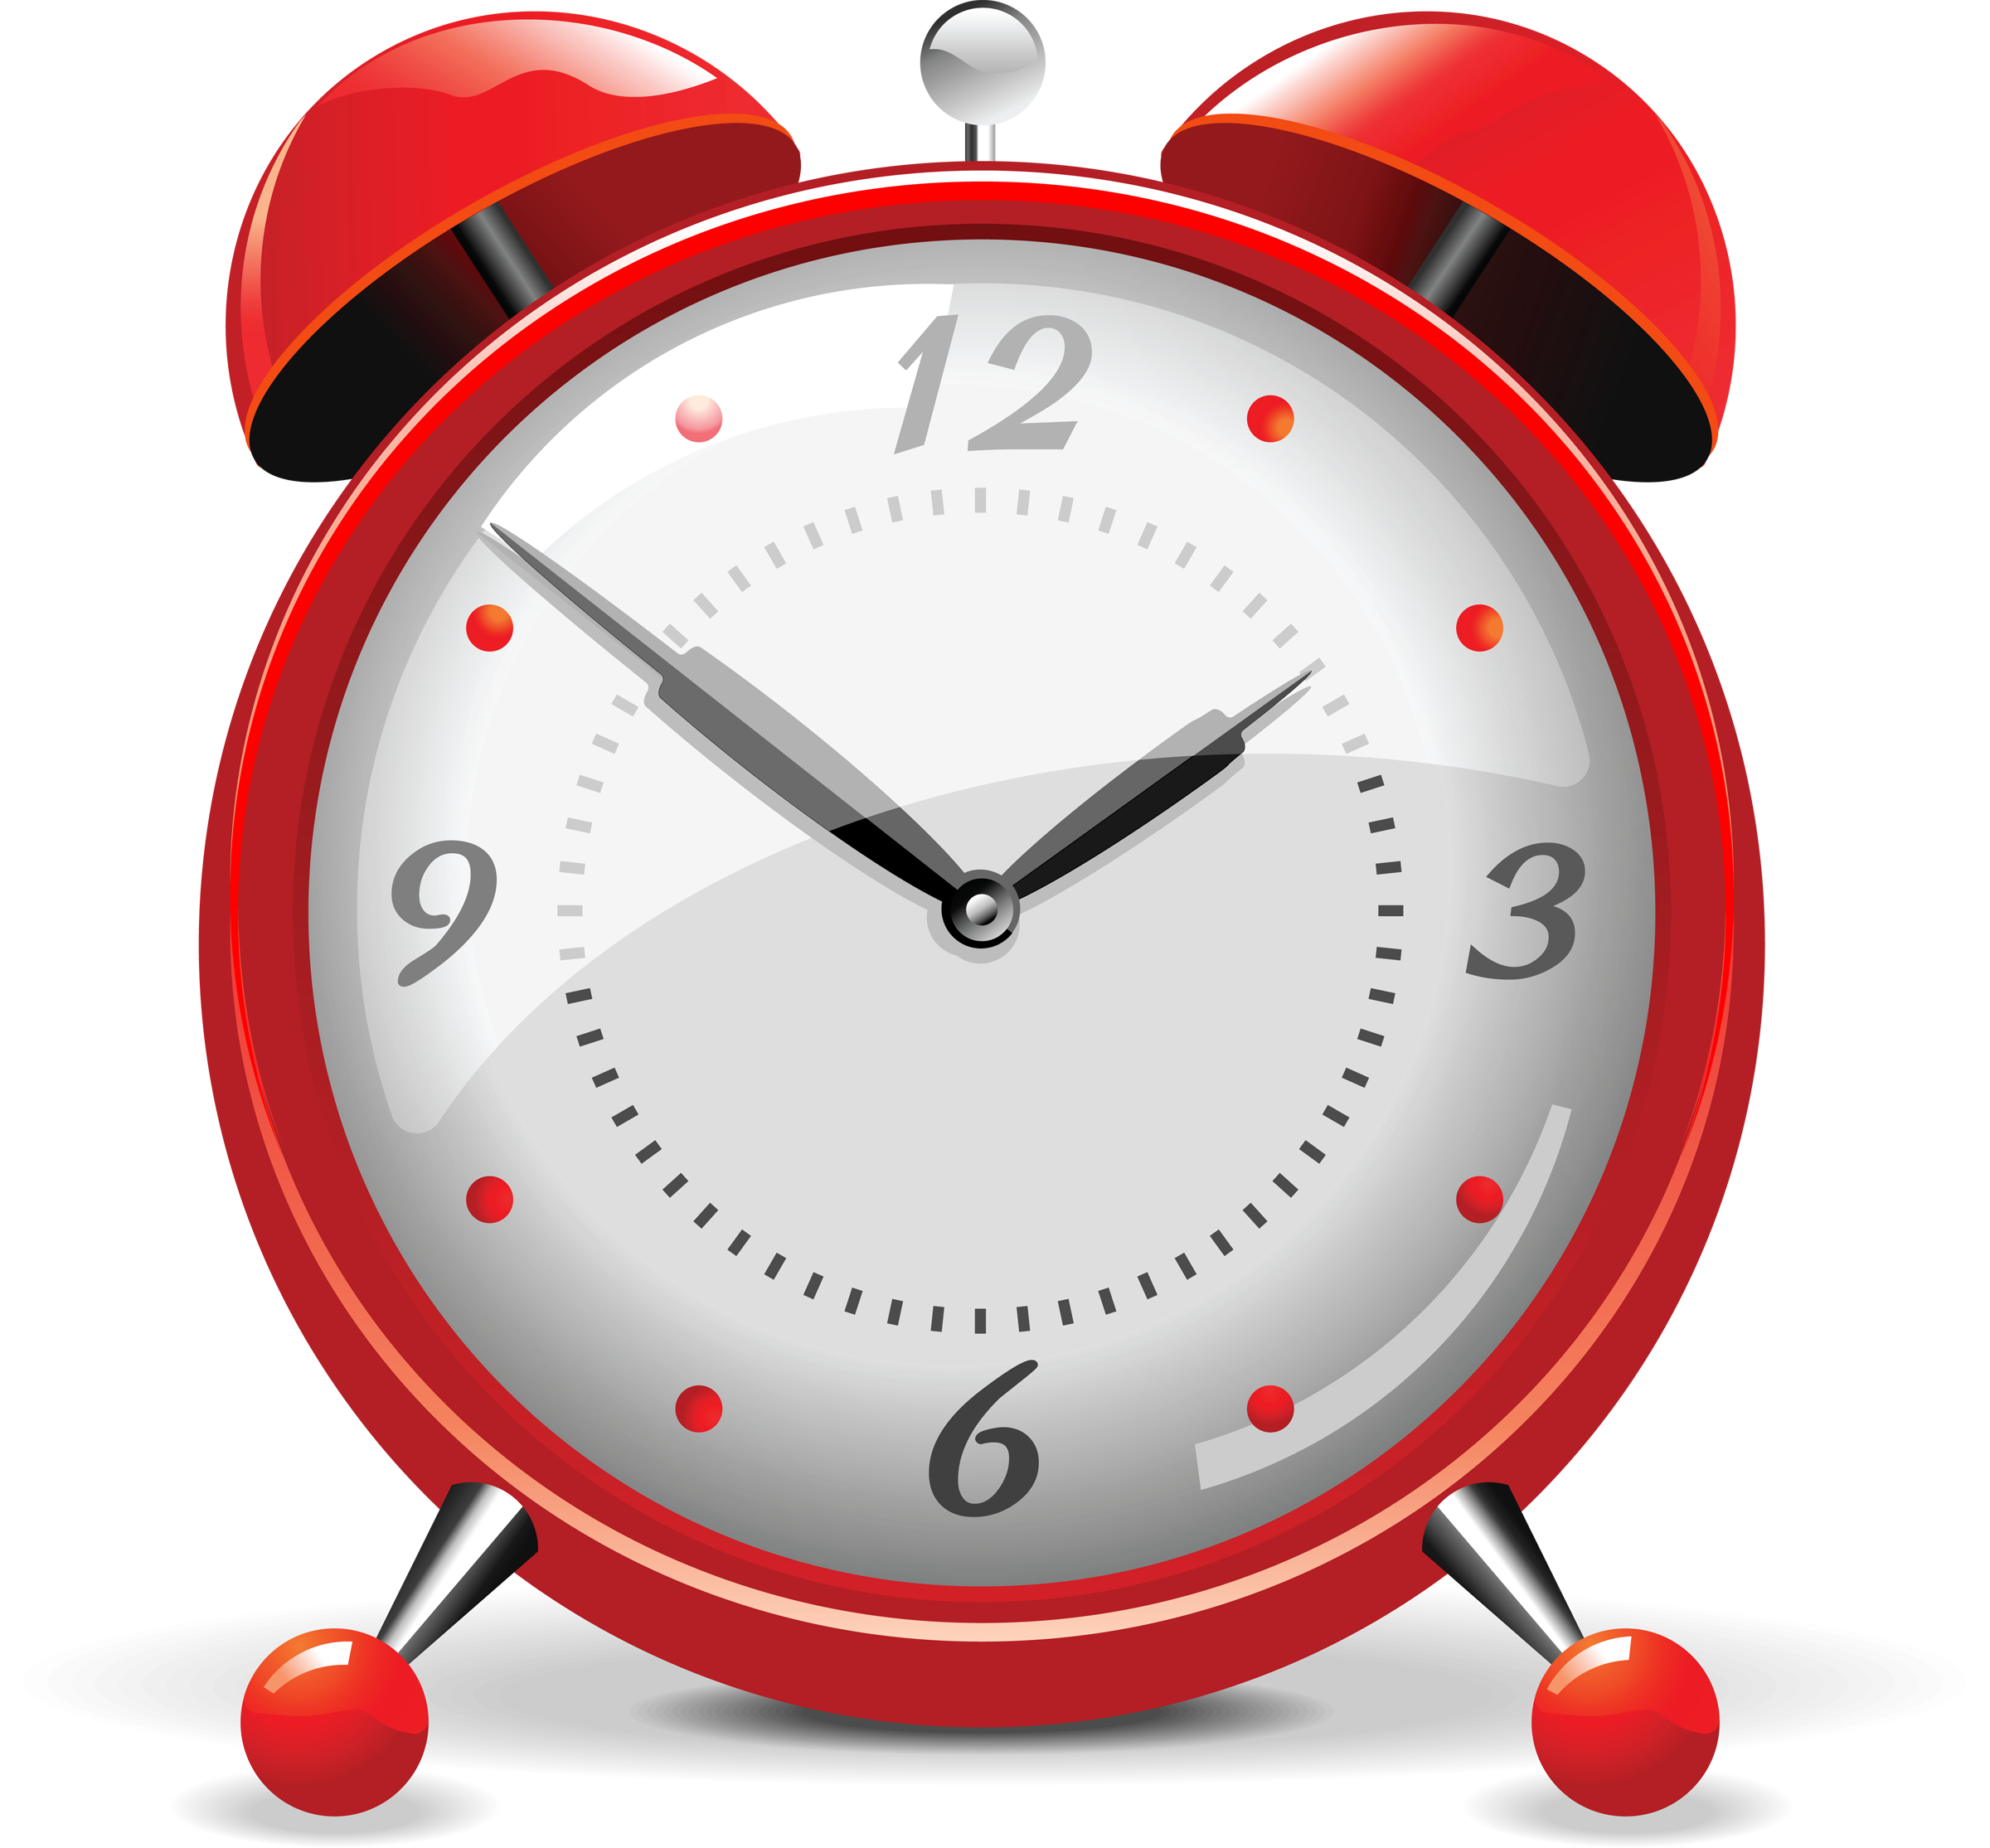 Red Alarm Clock PNG Image - PurePNG | Free transparent CC0